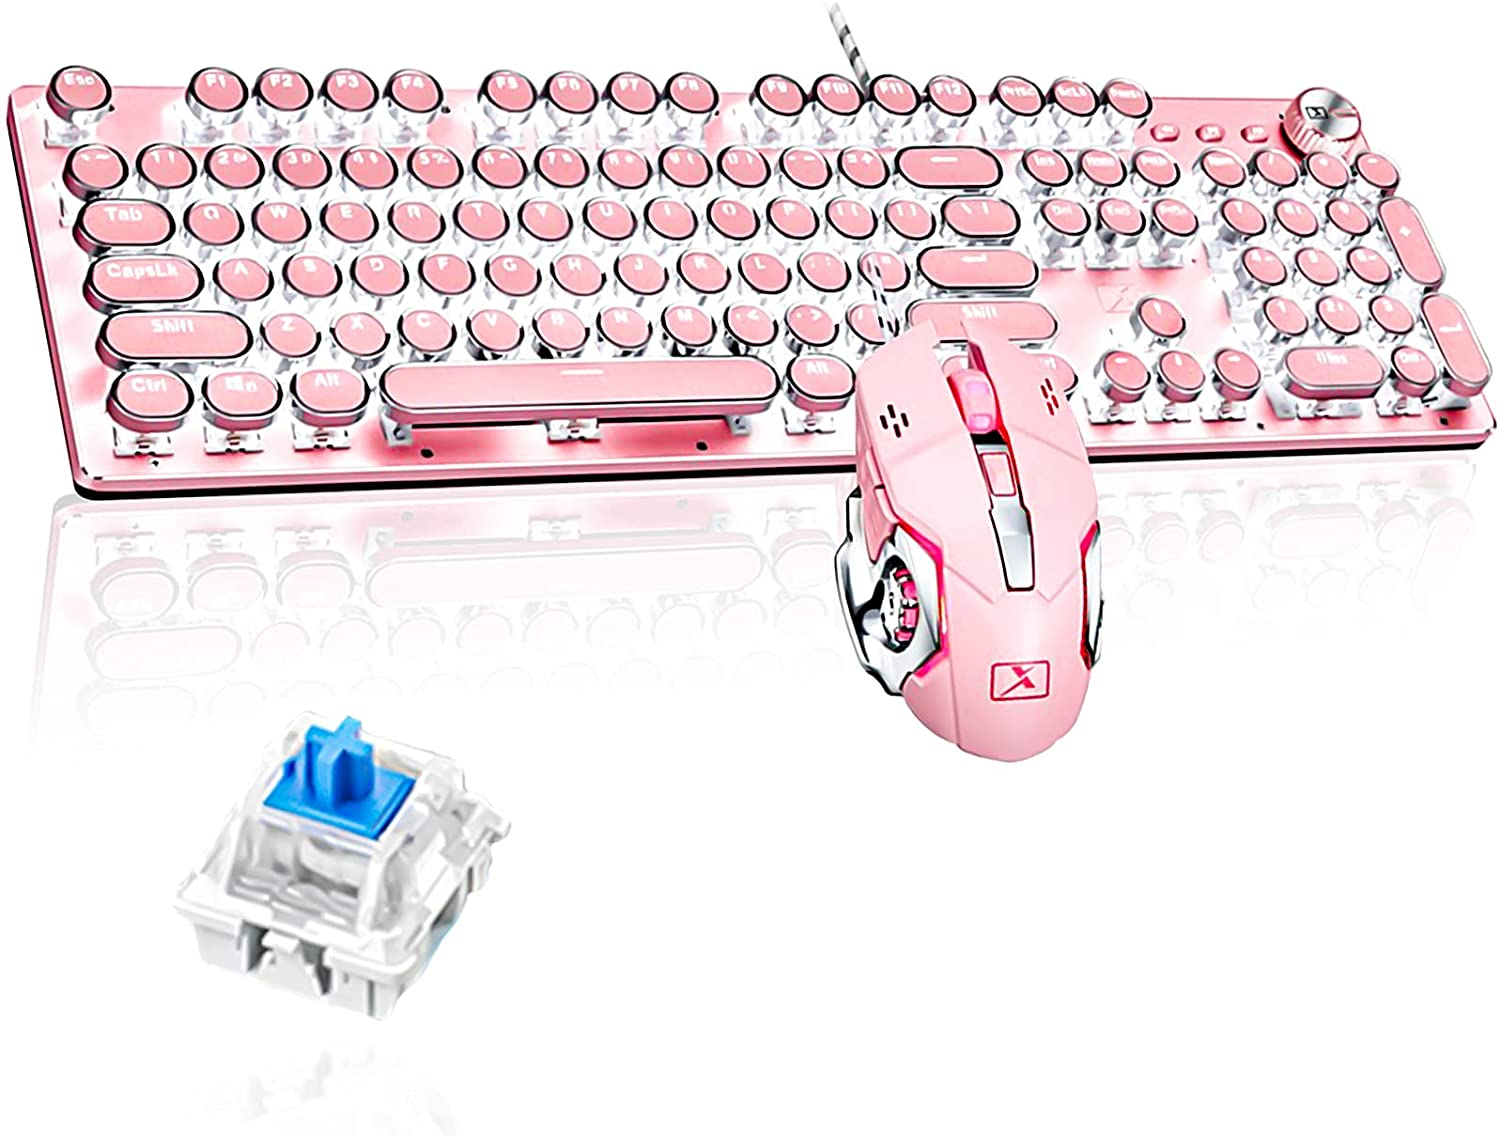 Pink Vintage Mechanical Gaming Keyboard with Mouse Retro Punk Typewriter-Style White LED Backlit USB Wired Mechanical Keyboard for PC Laptop Desktop Computer Game and Office(Blue Switch)